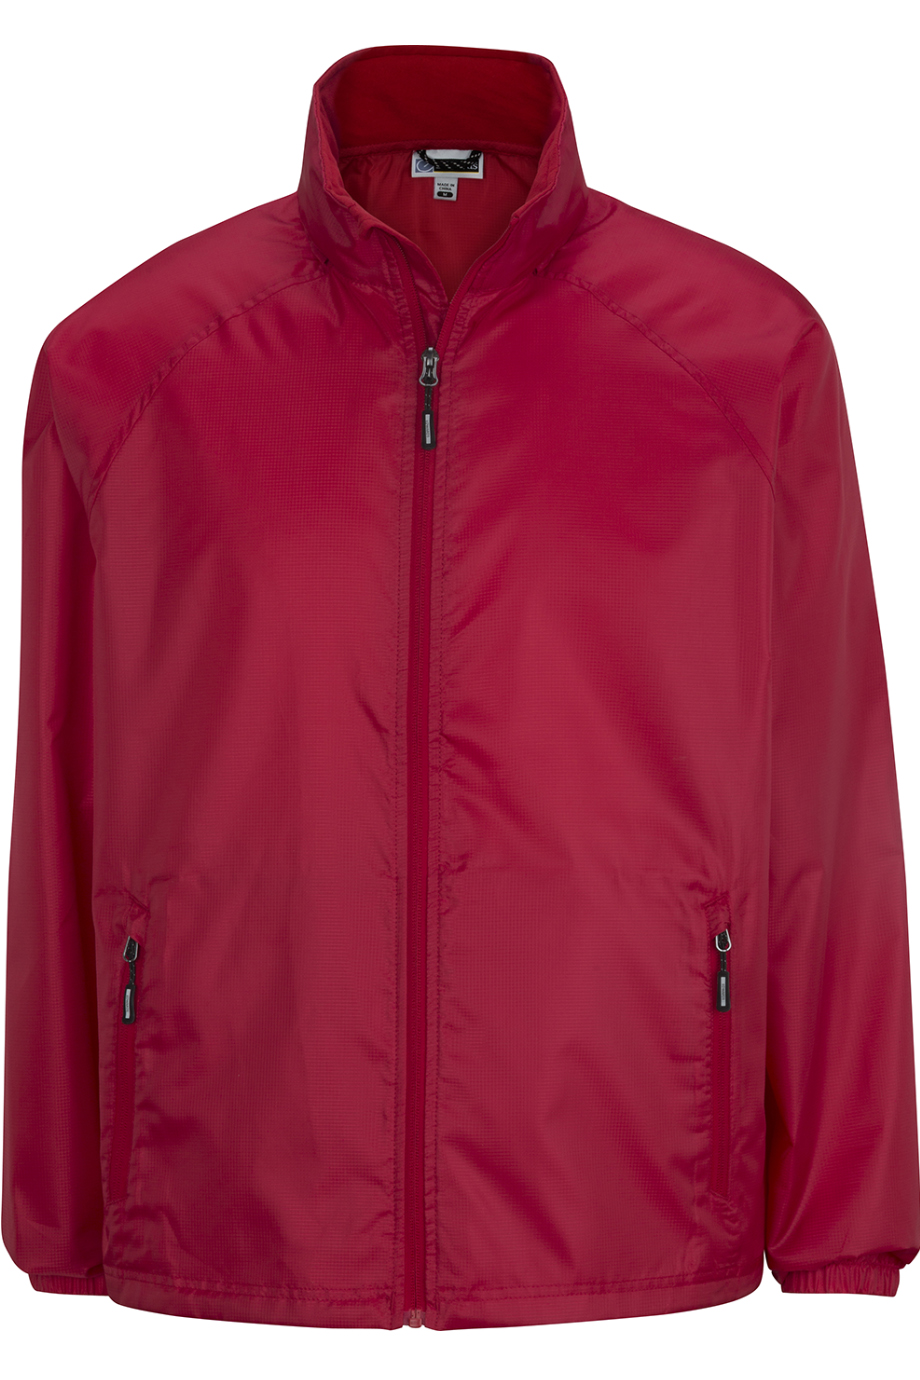 Edwards Mens Hooded Rain Jacket-Edwards